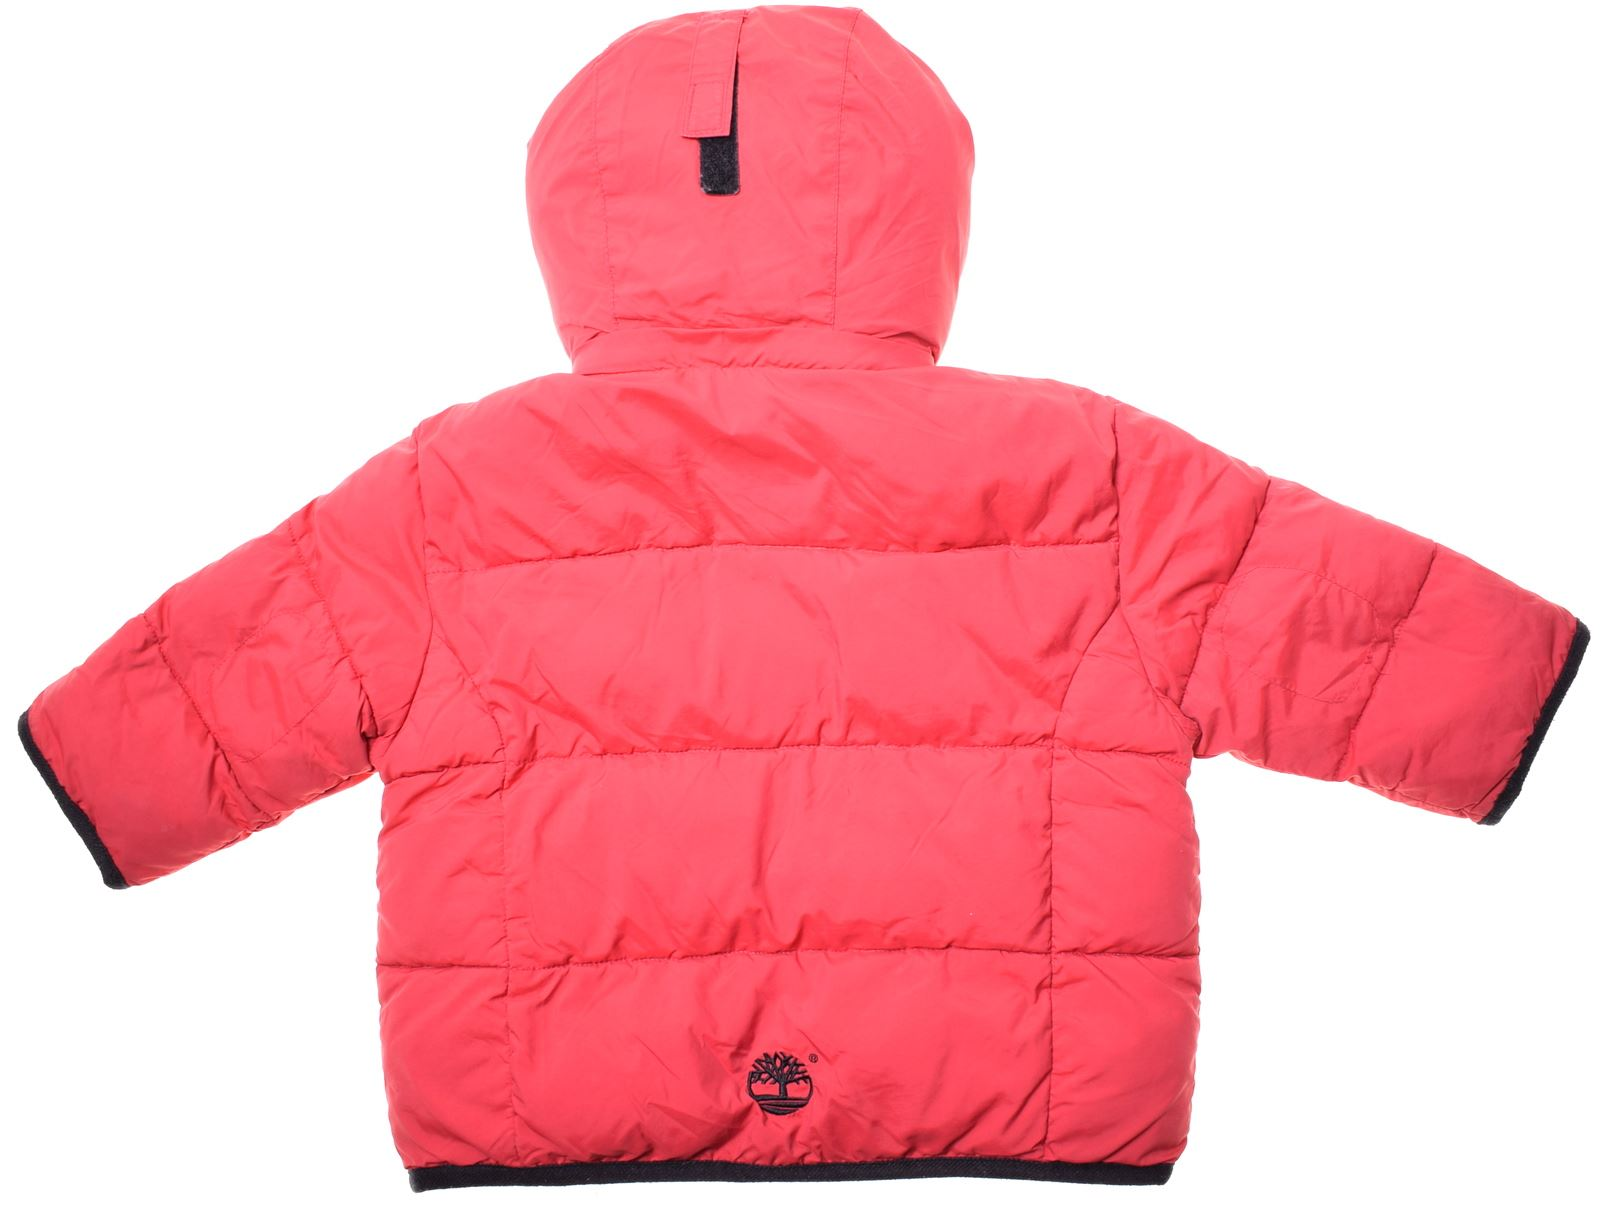 Details about TIMBERLAND Boys Padded Jacket 6 9 Months Red Polyester CZ02